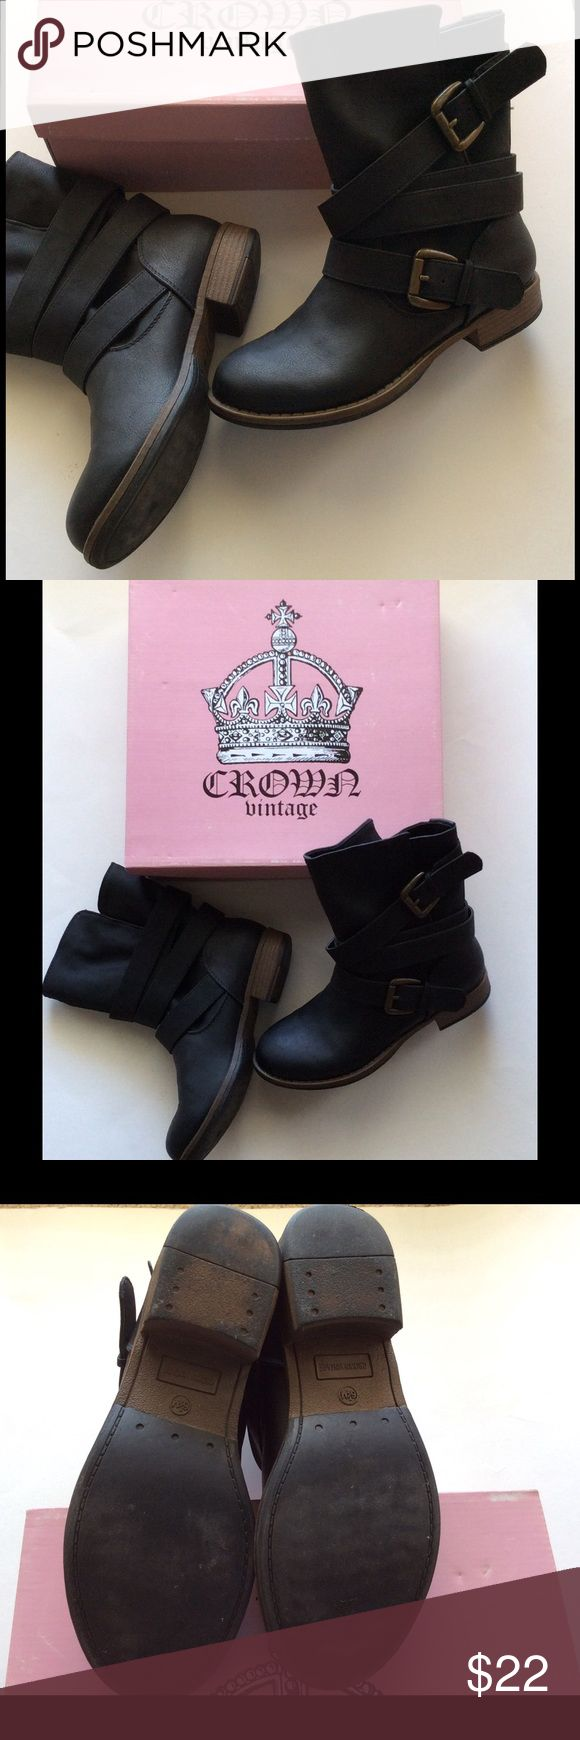 Darling Moto Boots  Black Moto boots with wrap around straps and two buckles. Crown Vintage Shoes Ankle Boots & Booties